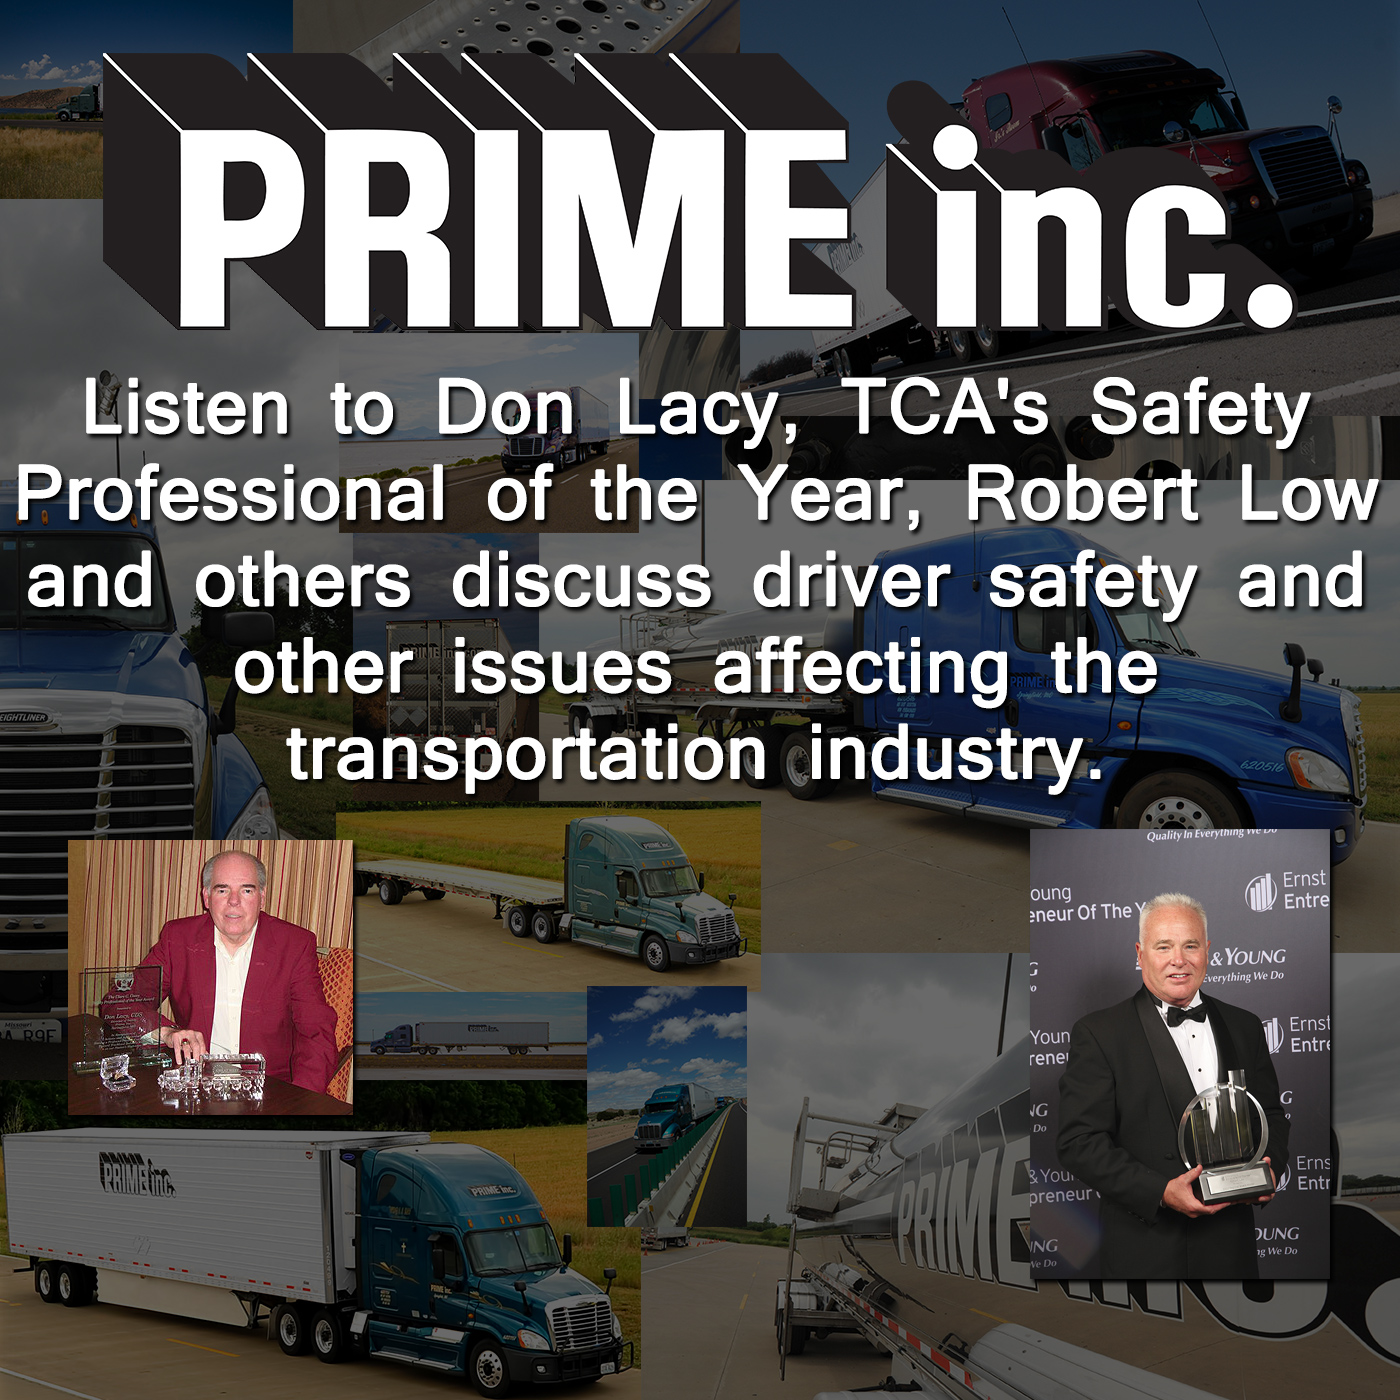 Prime Inc. Drivers Trucking Safety Podcast